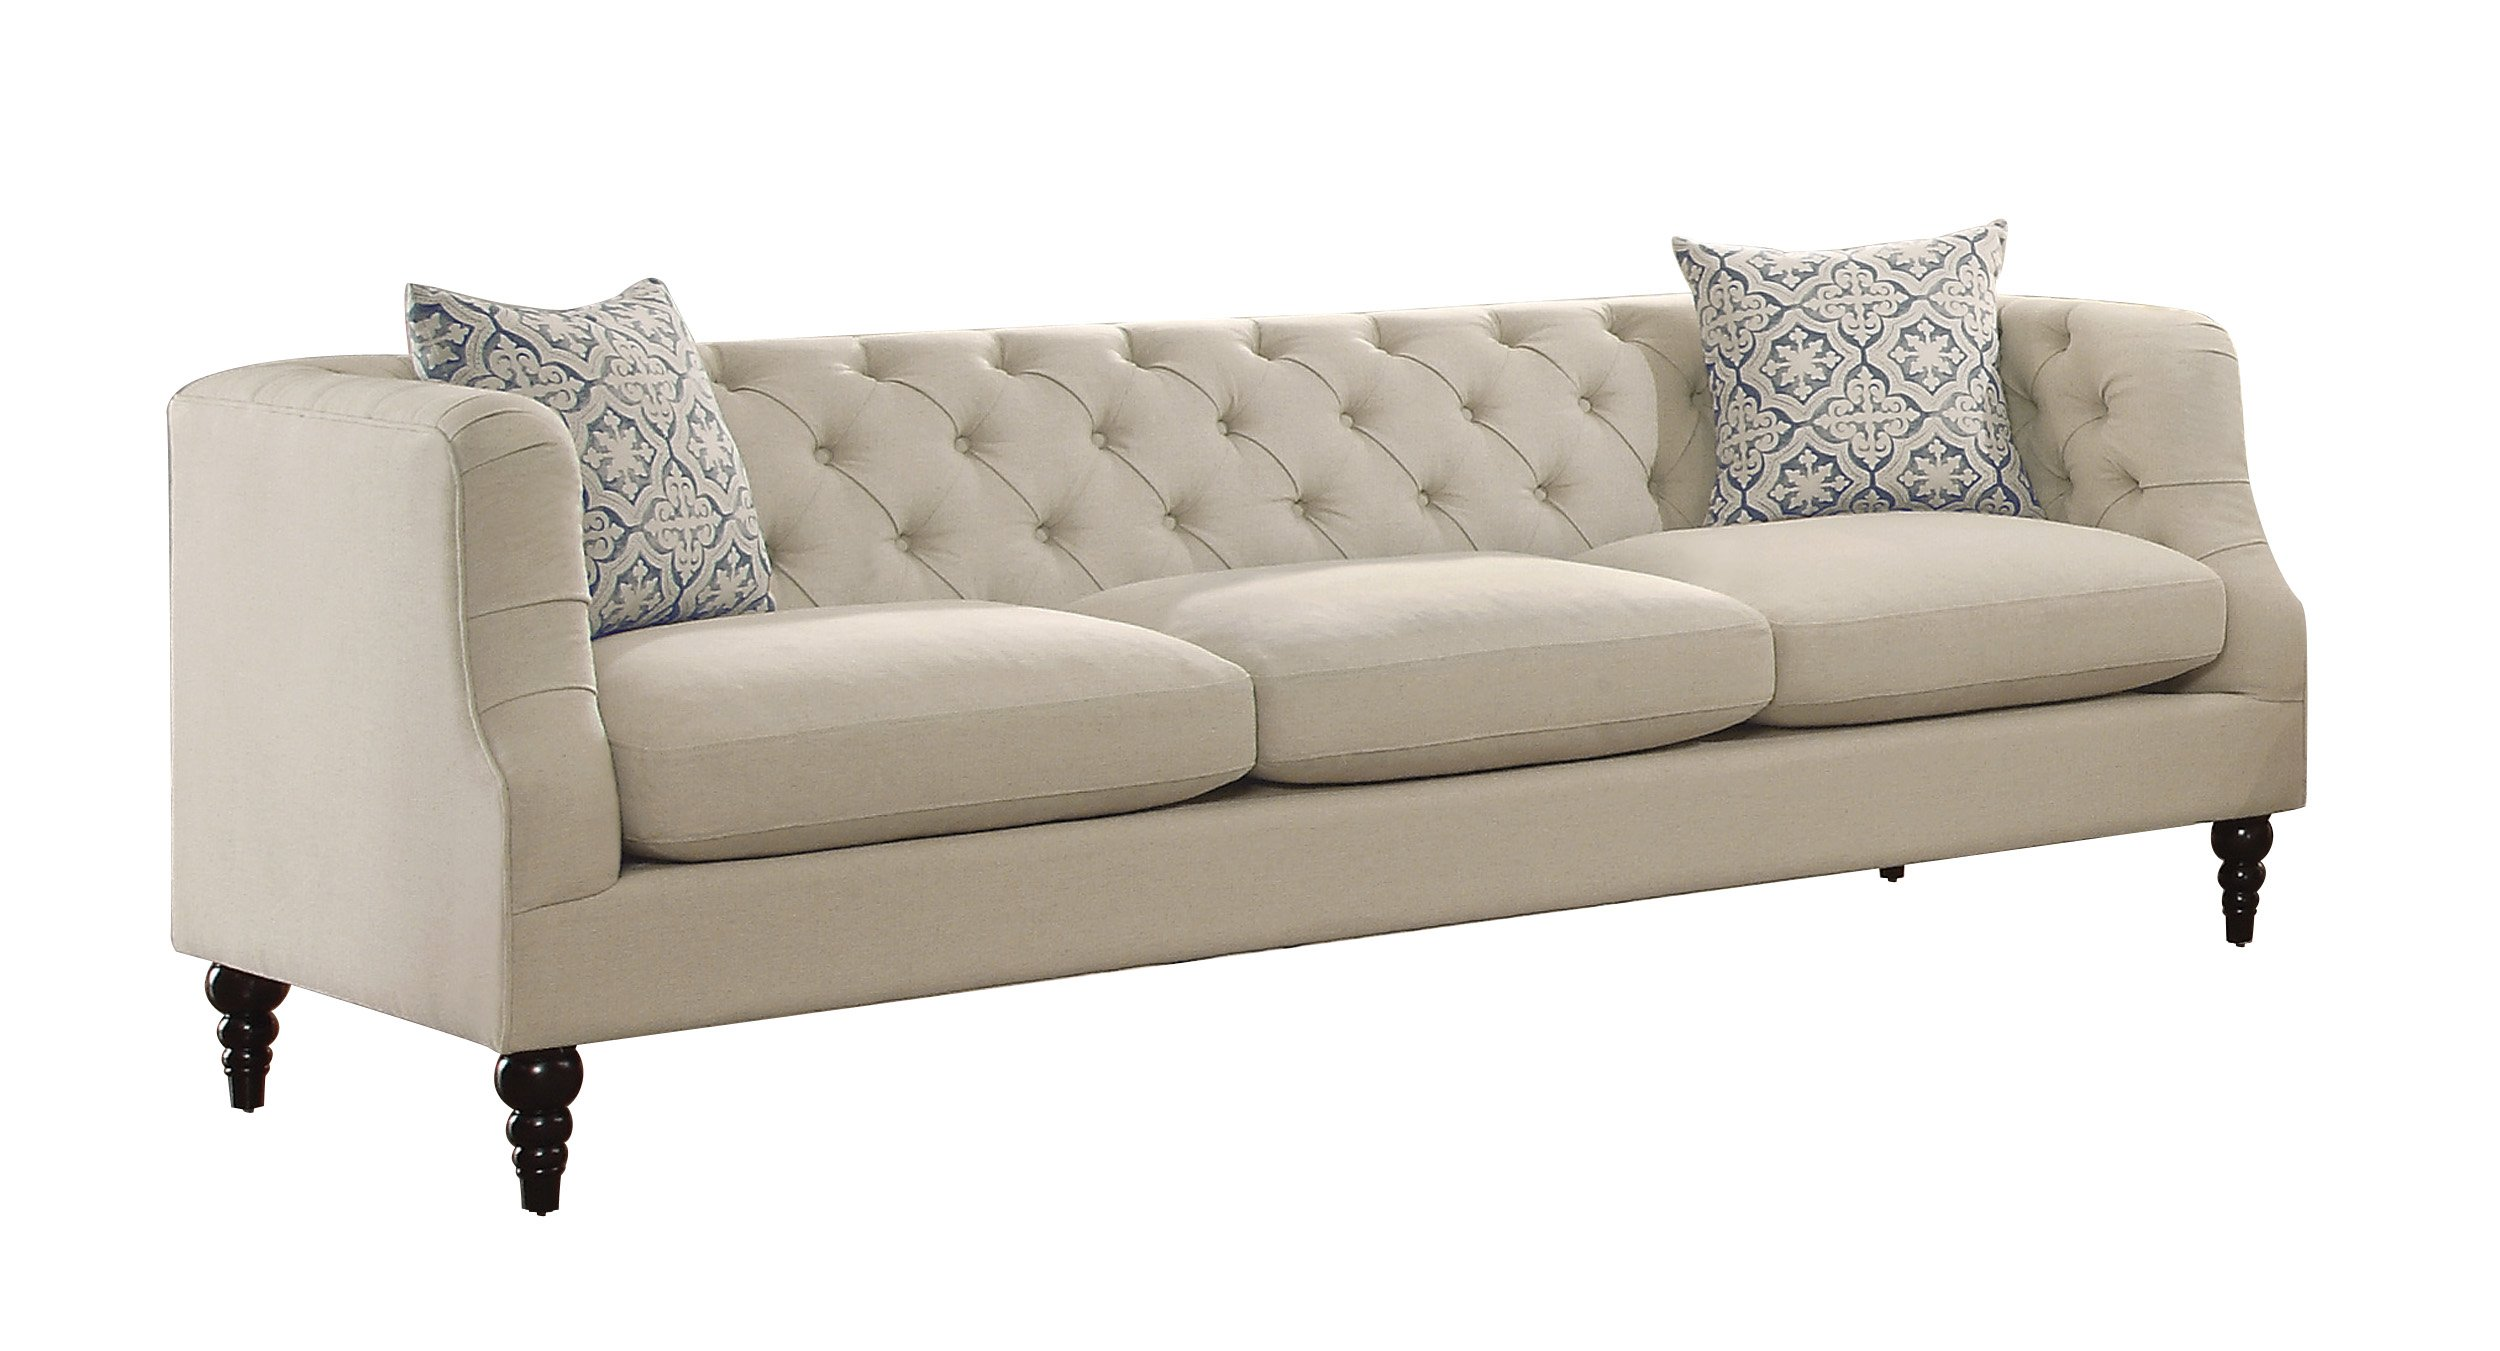 Homelegance Radley Button Tufted Sofa with Contour Arms and Two Throw Pillows, Beige by Homelegance